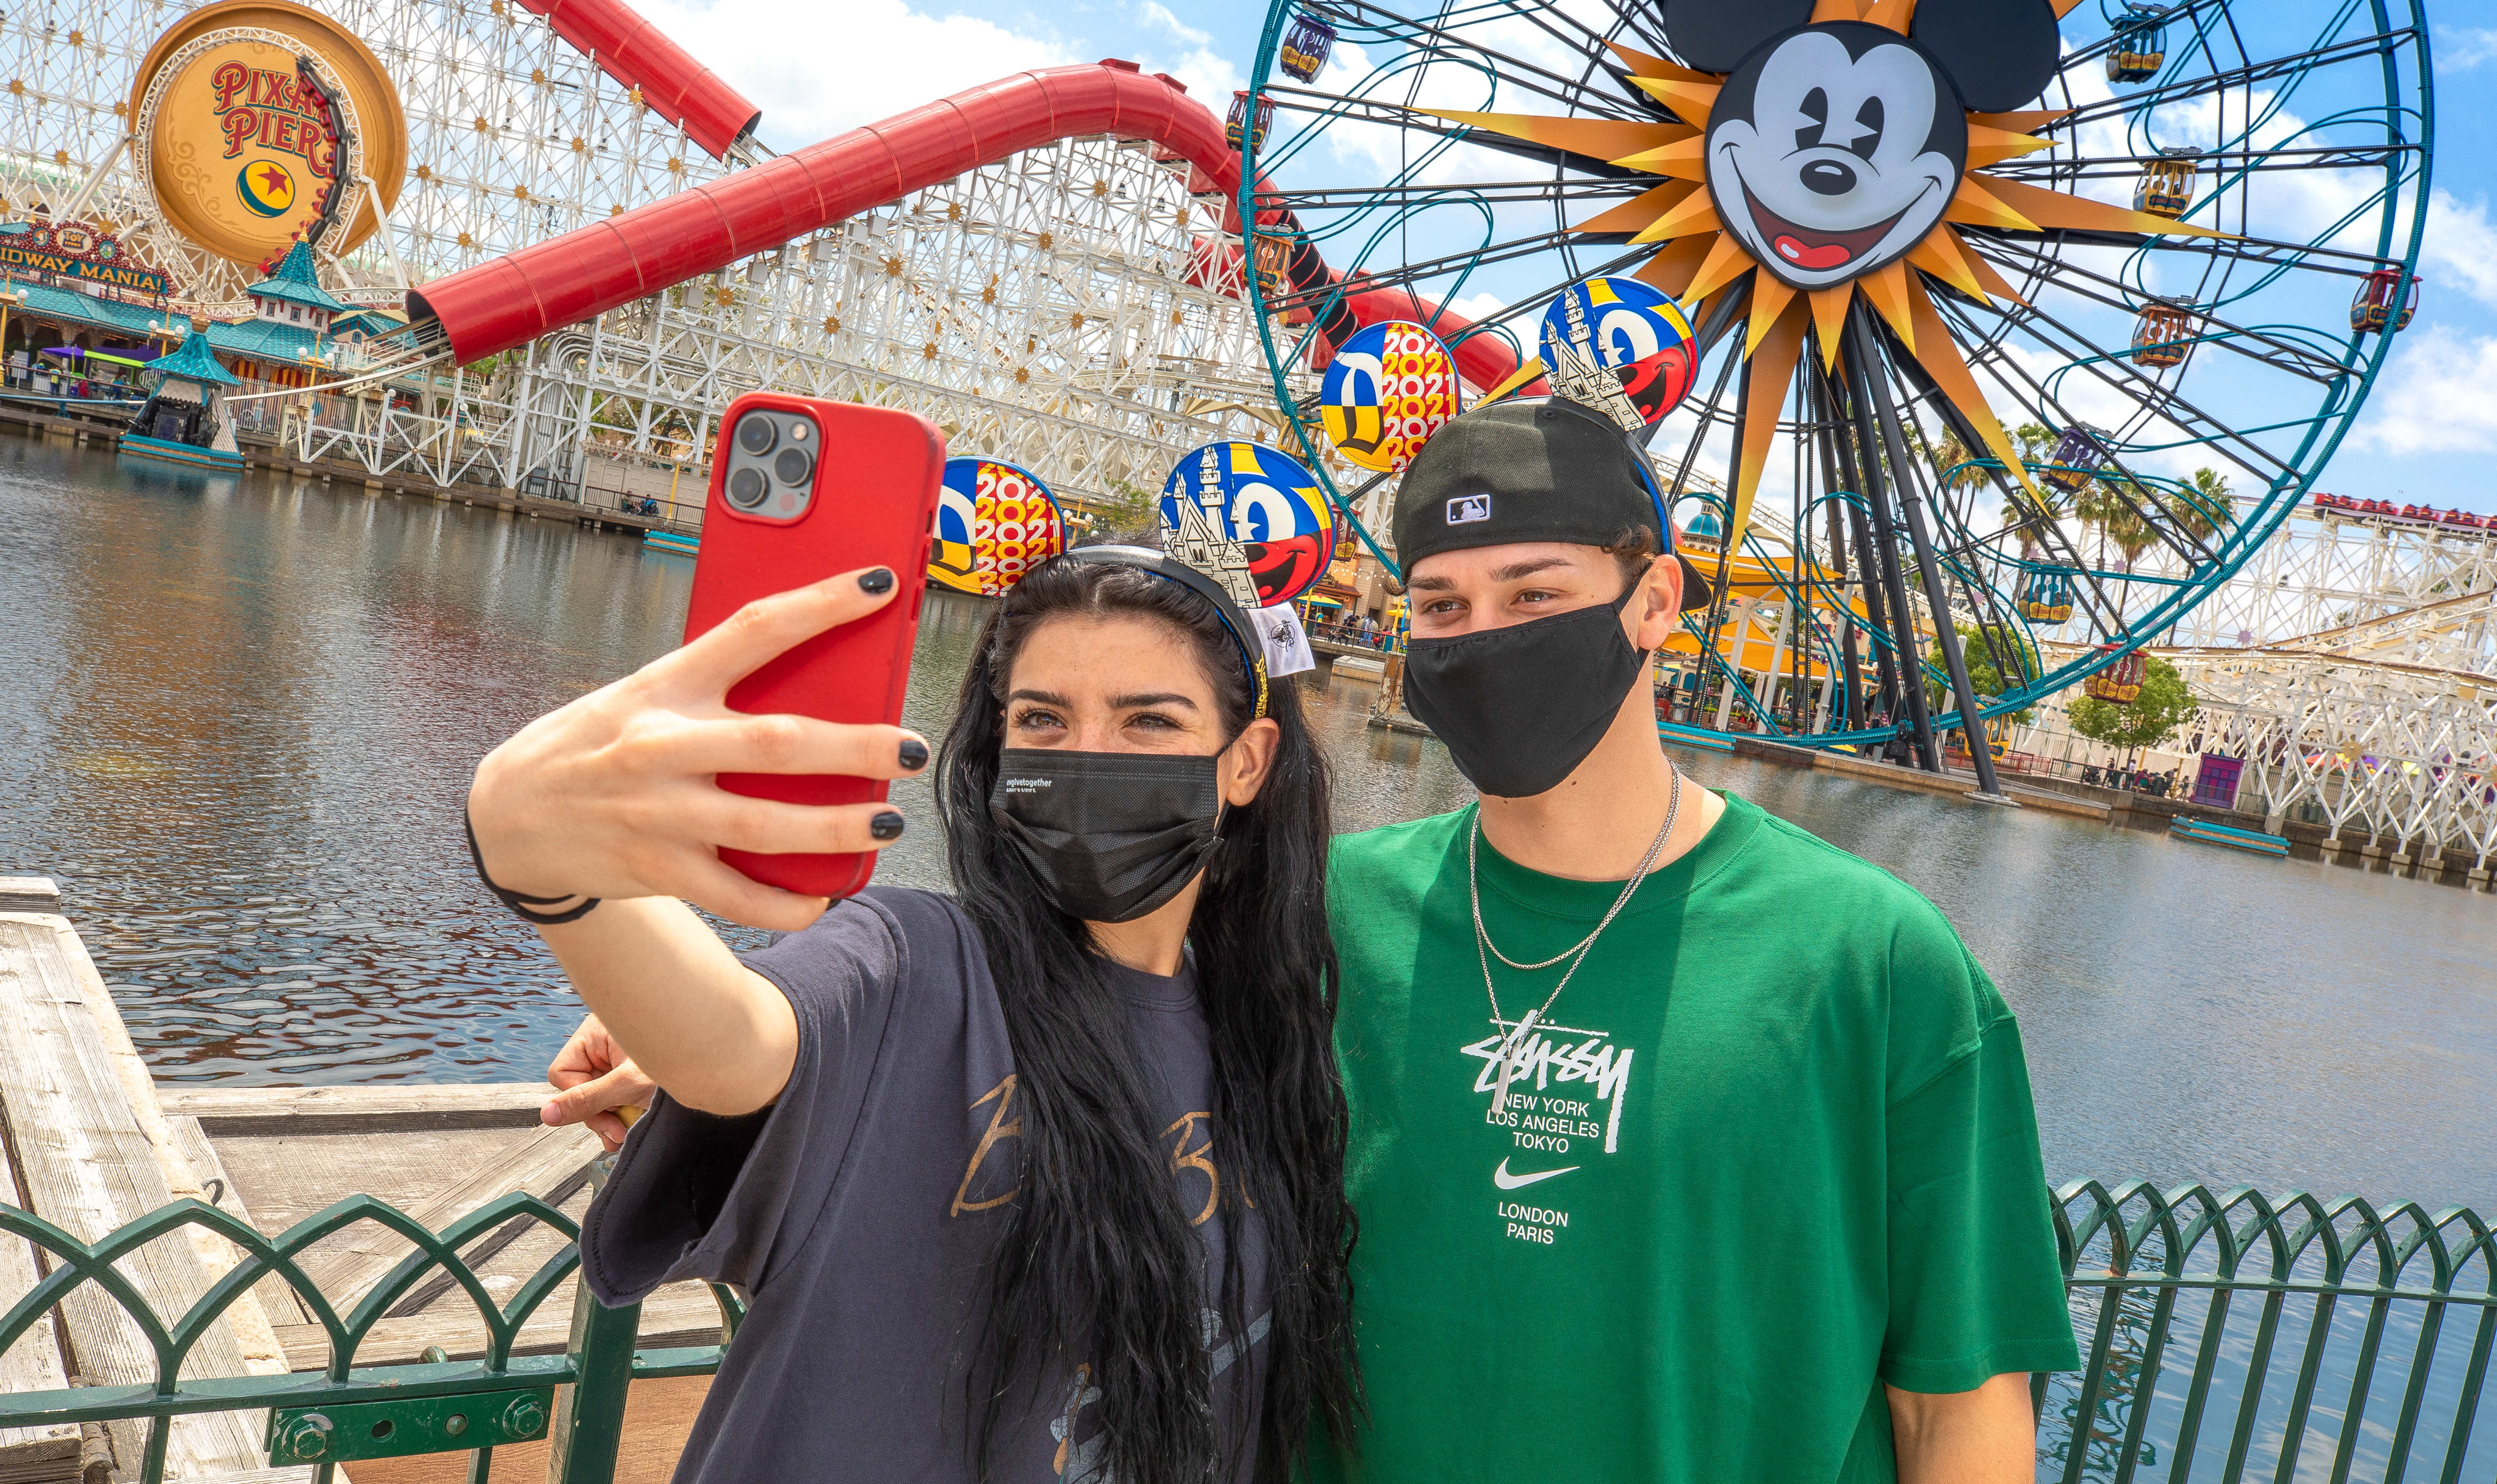 With theme parks set to rebound this summer, travel advisors share trip tips